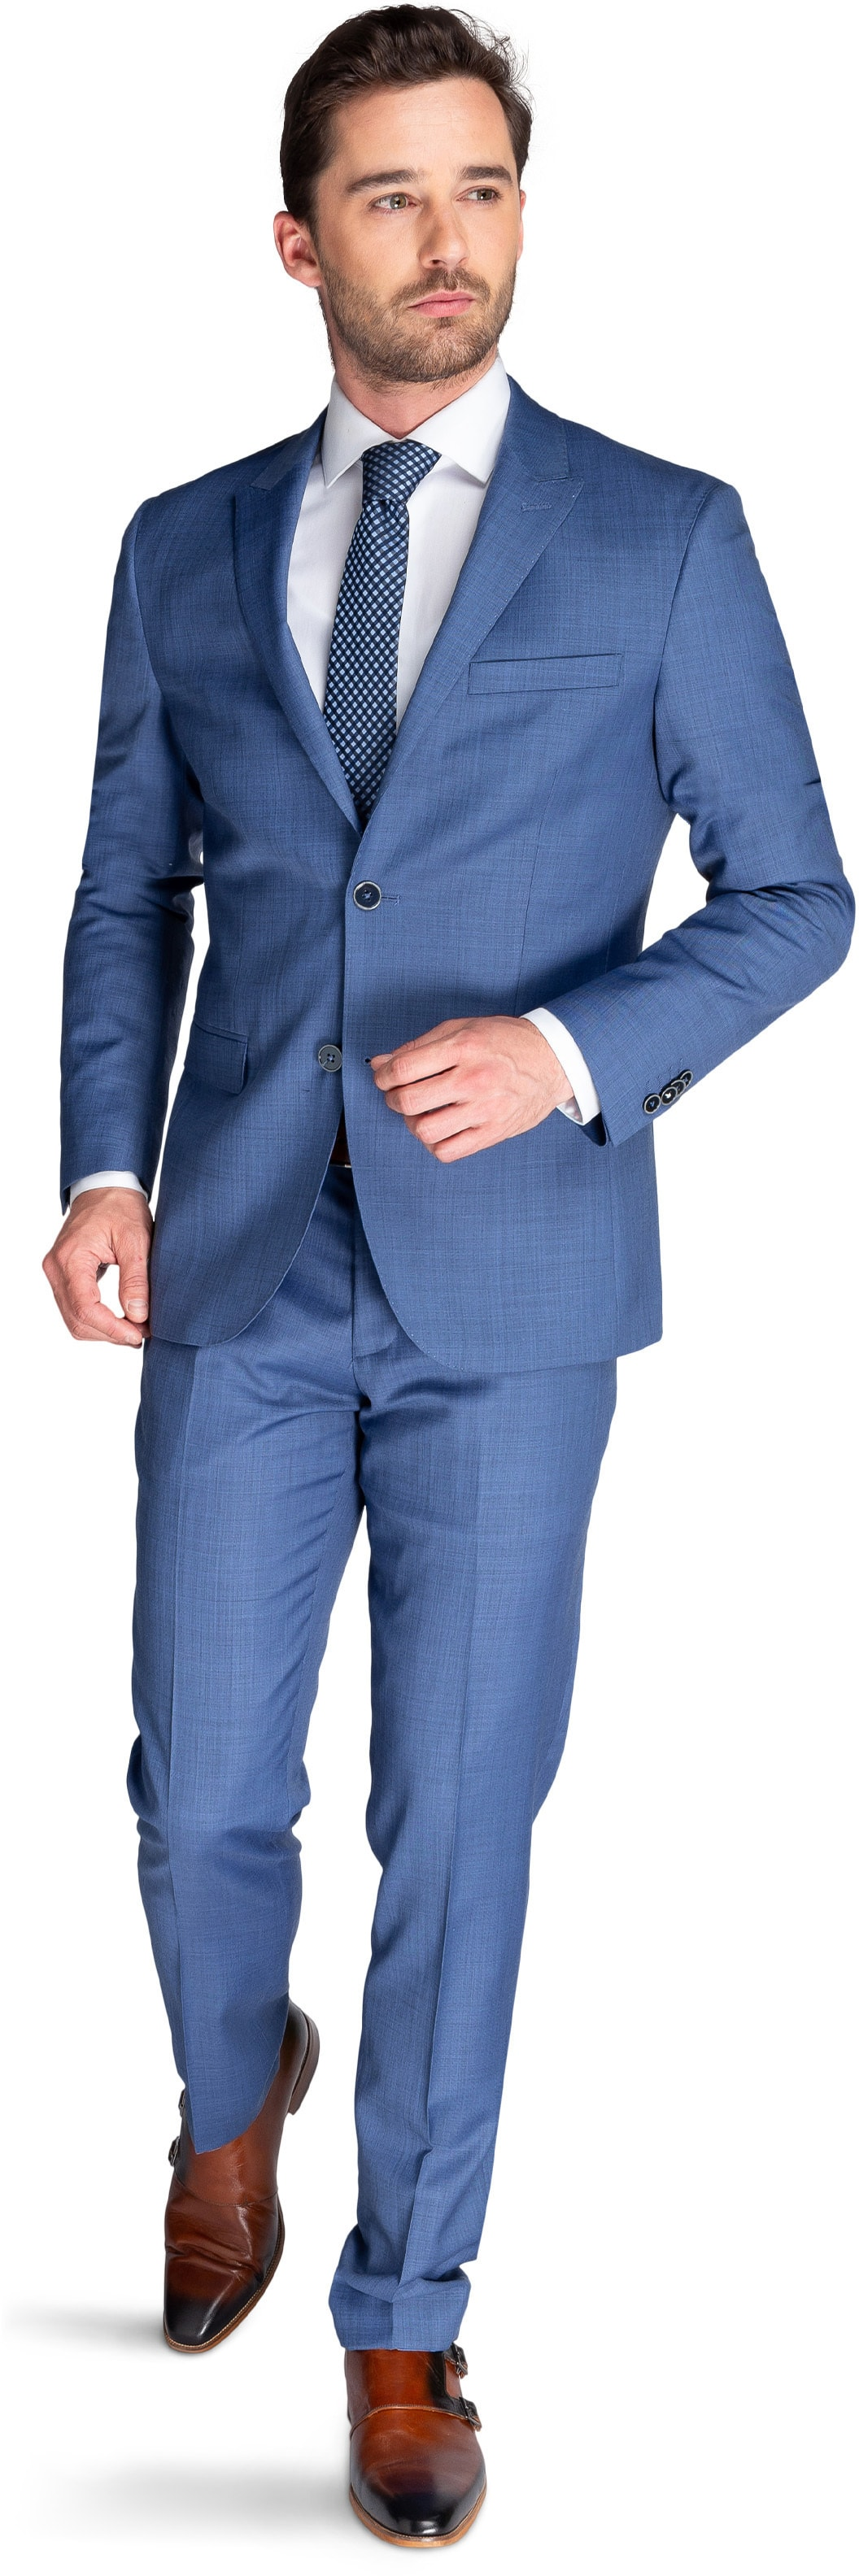 Suitable Suit Strato Indigo foto 0